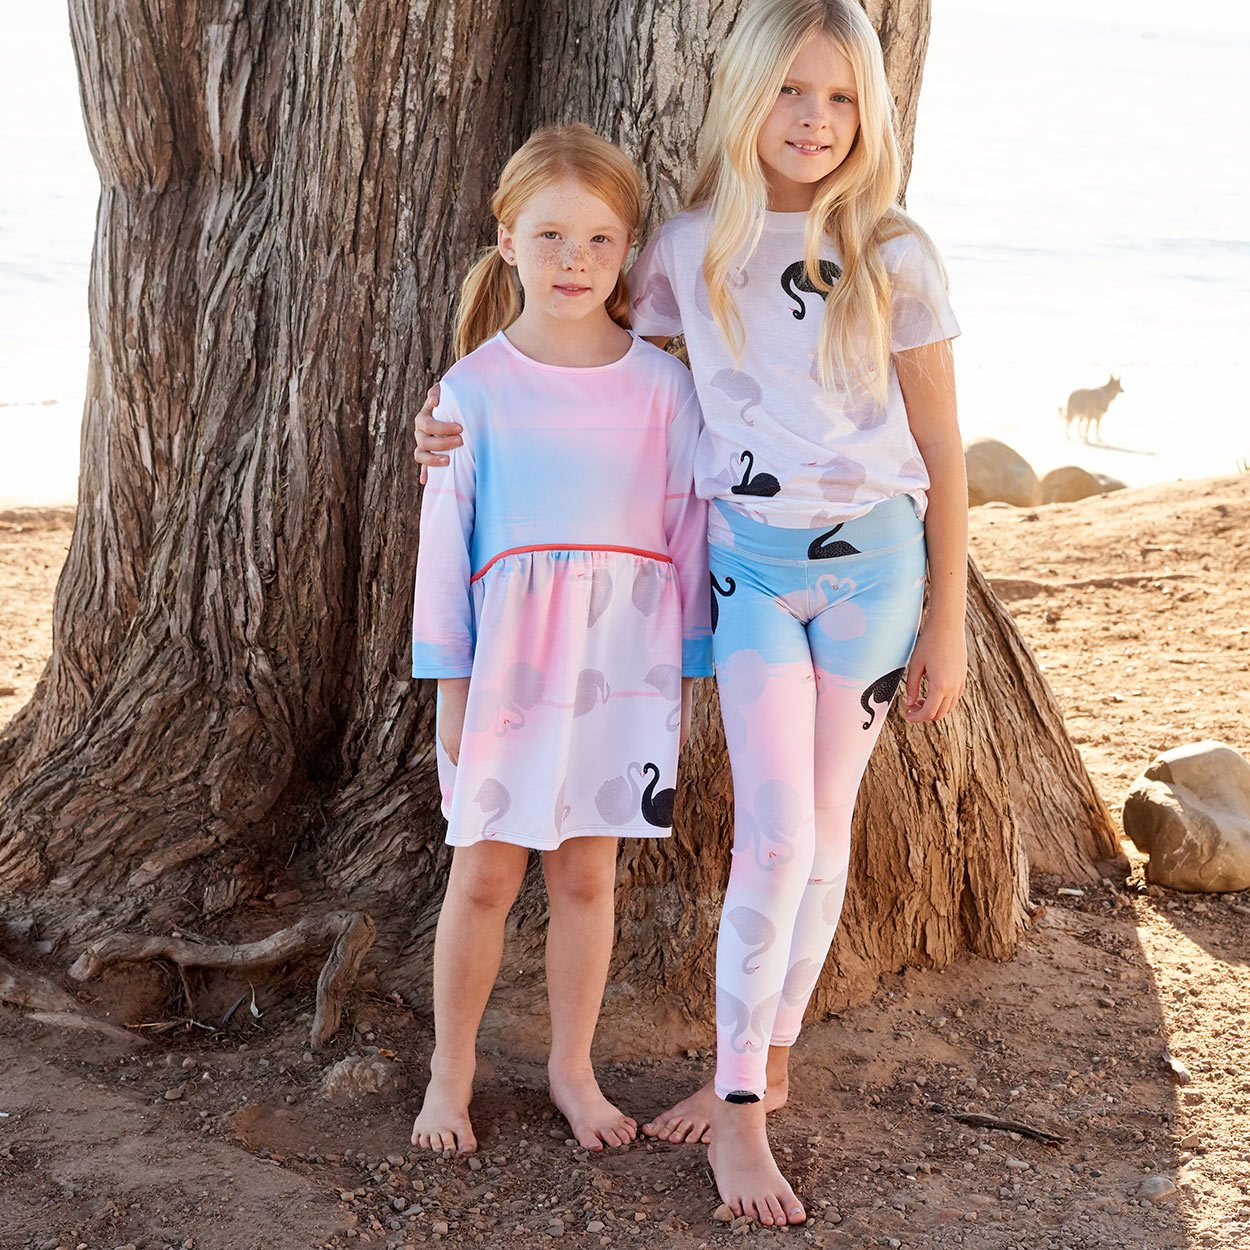 Swans Sunblock Youth Leggings Upf50 Girls Size 6 12 White Aqua Peach Two Sisters In The Shade By The Beach Sunpoplife